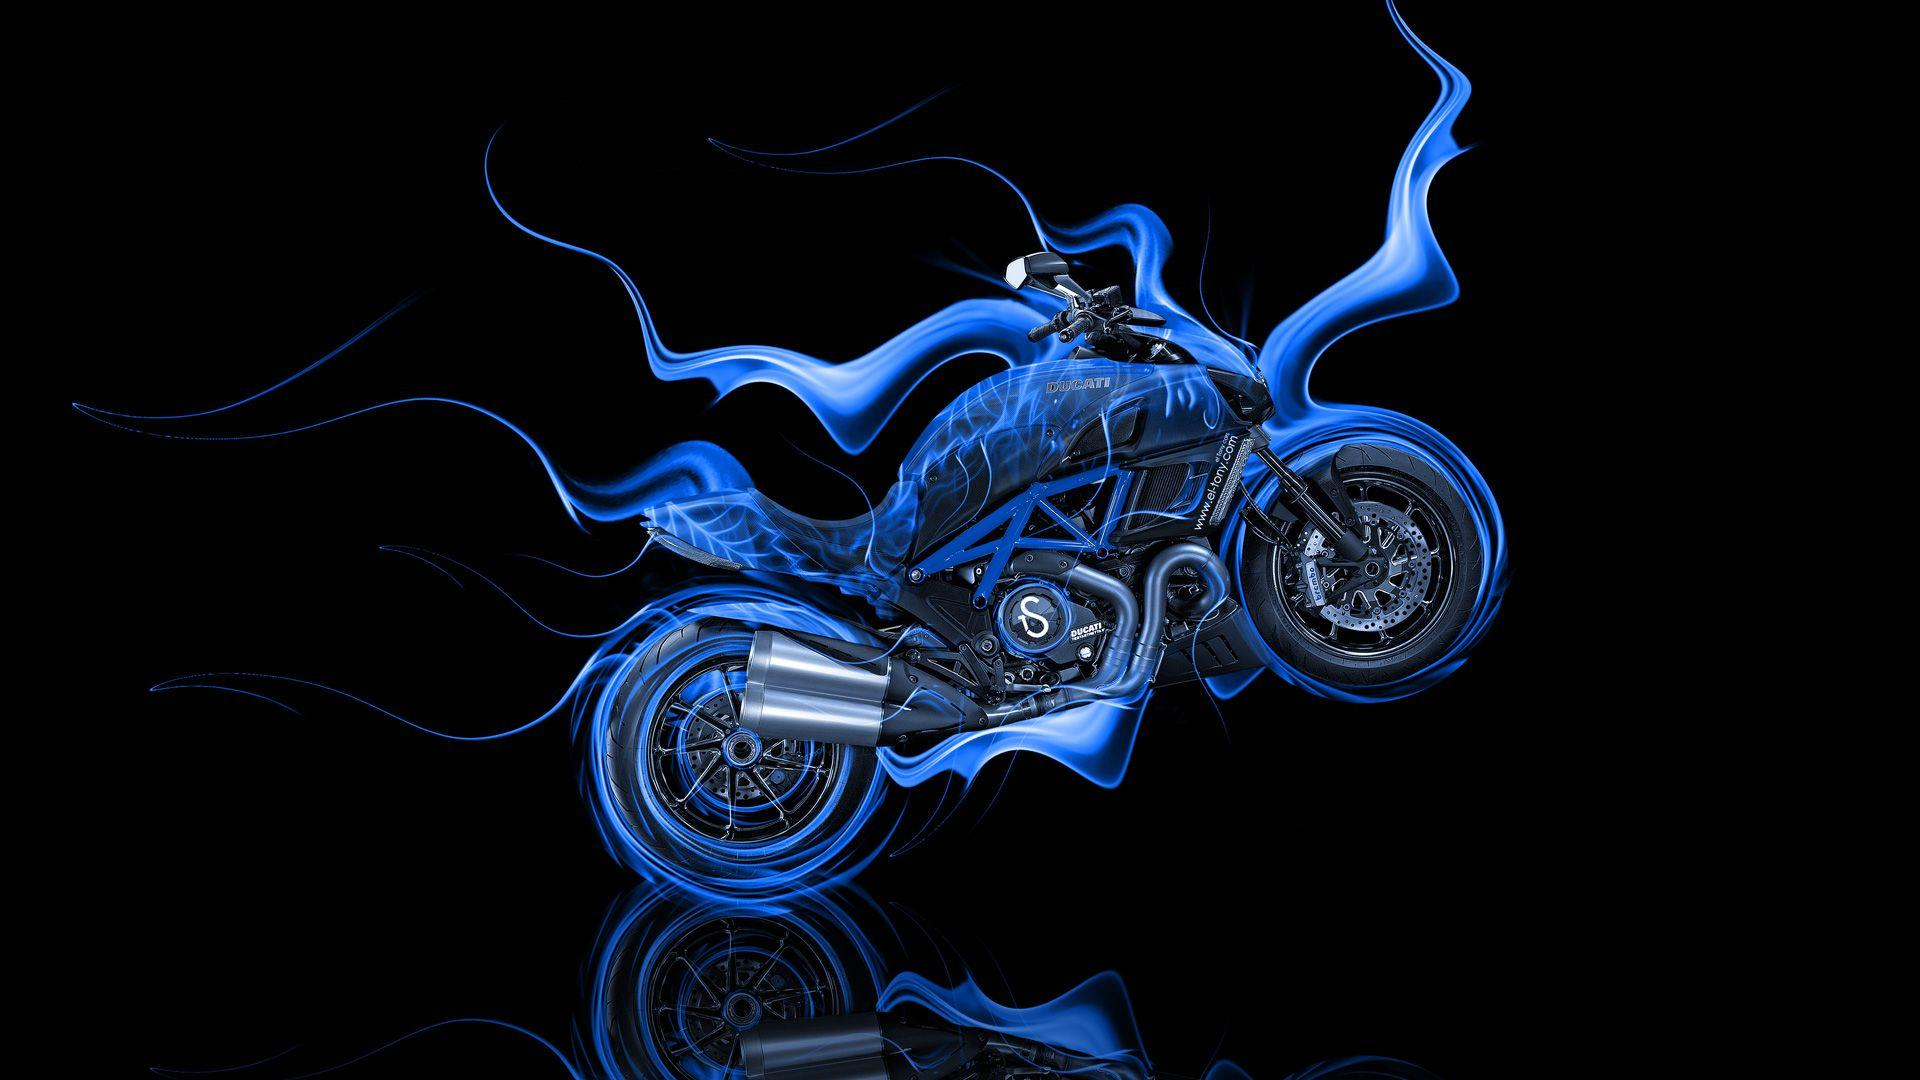 Abstract Bike Wallpapers Hd